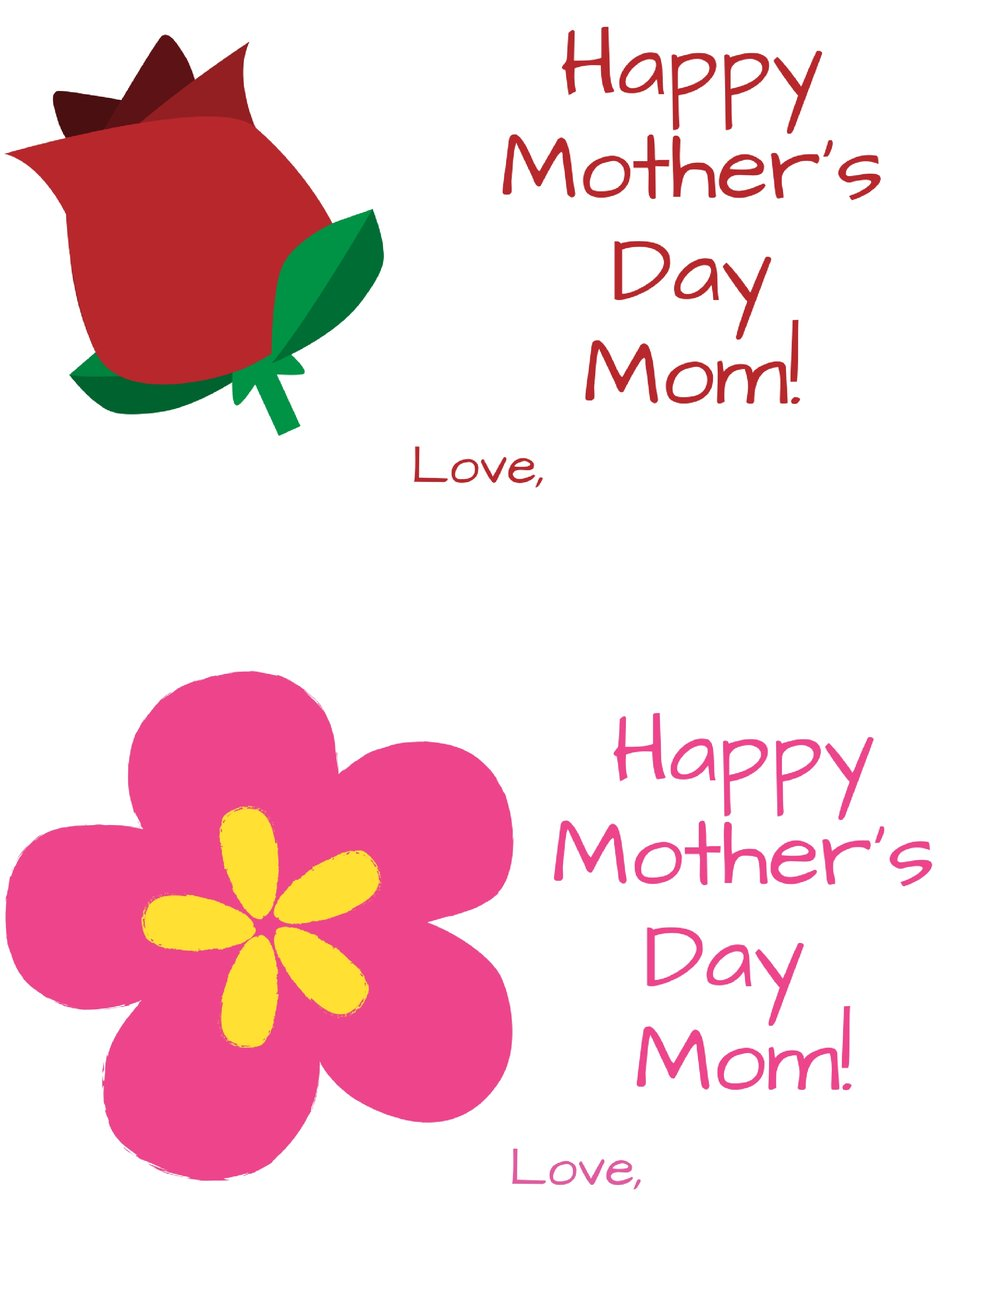 free printable mothers day image for NICU moms